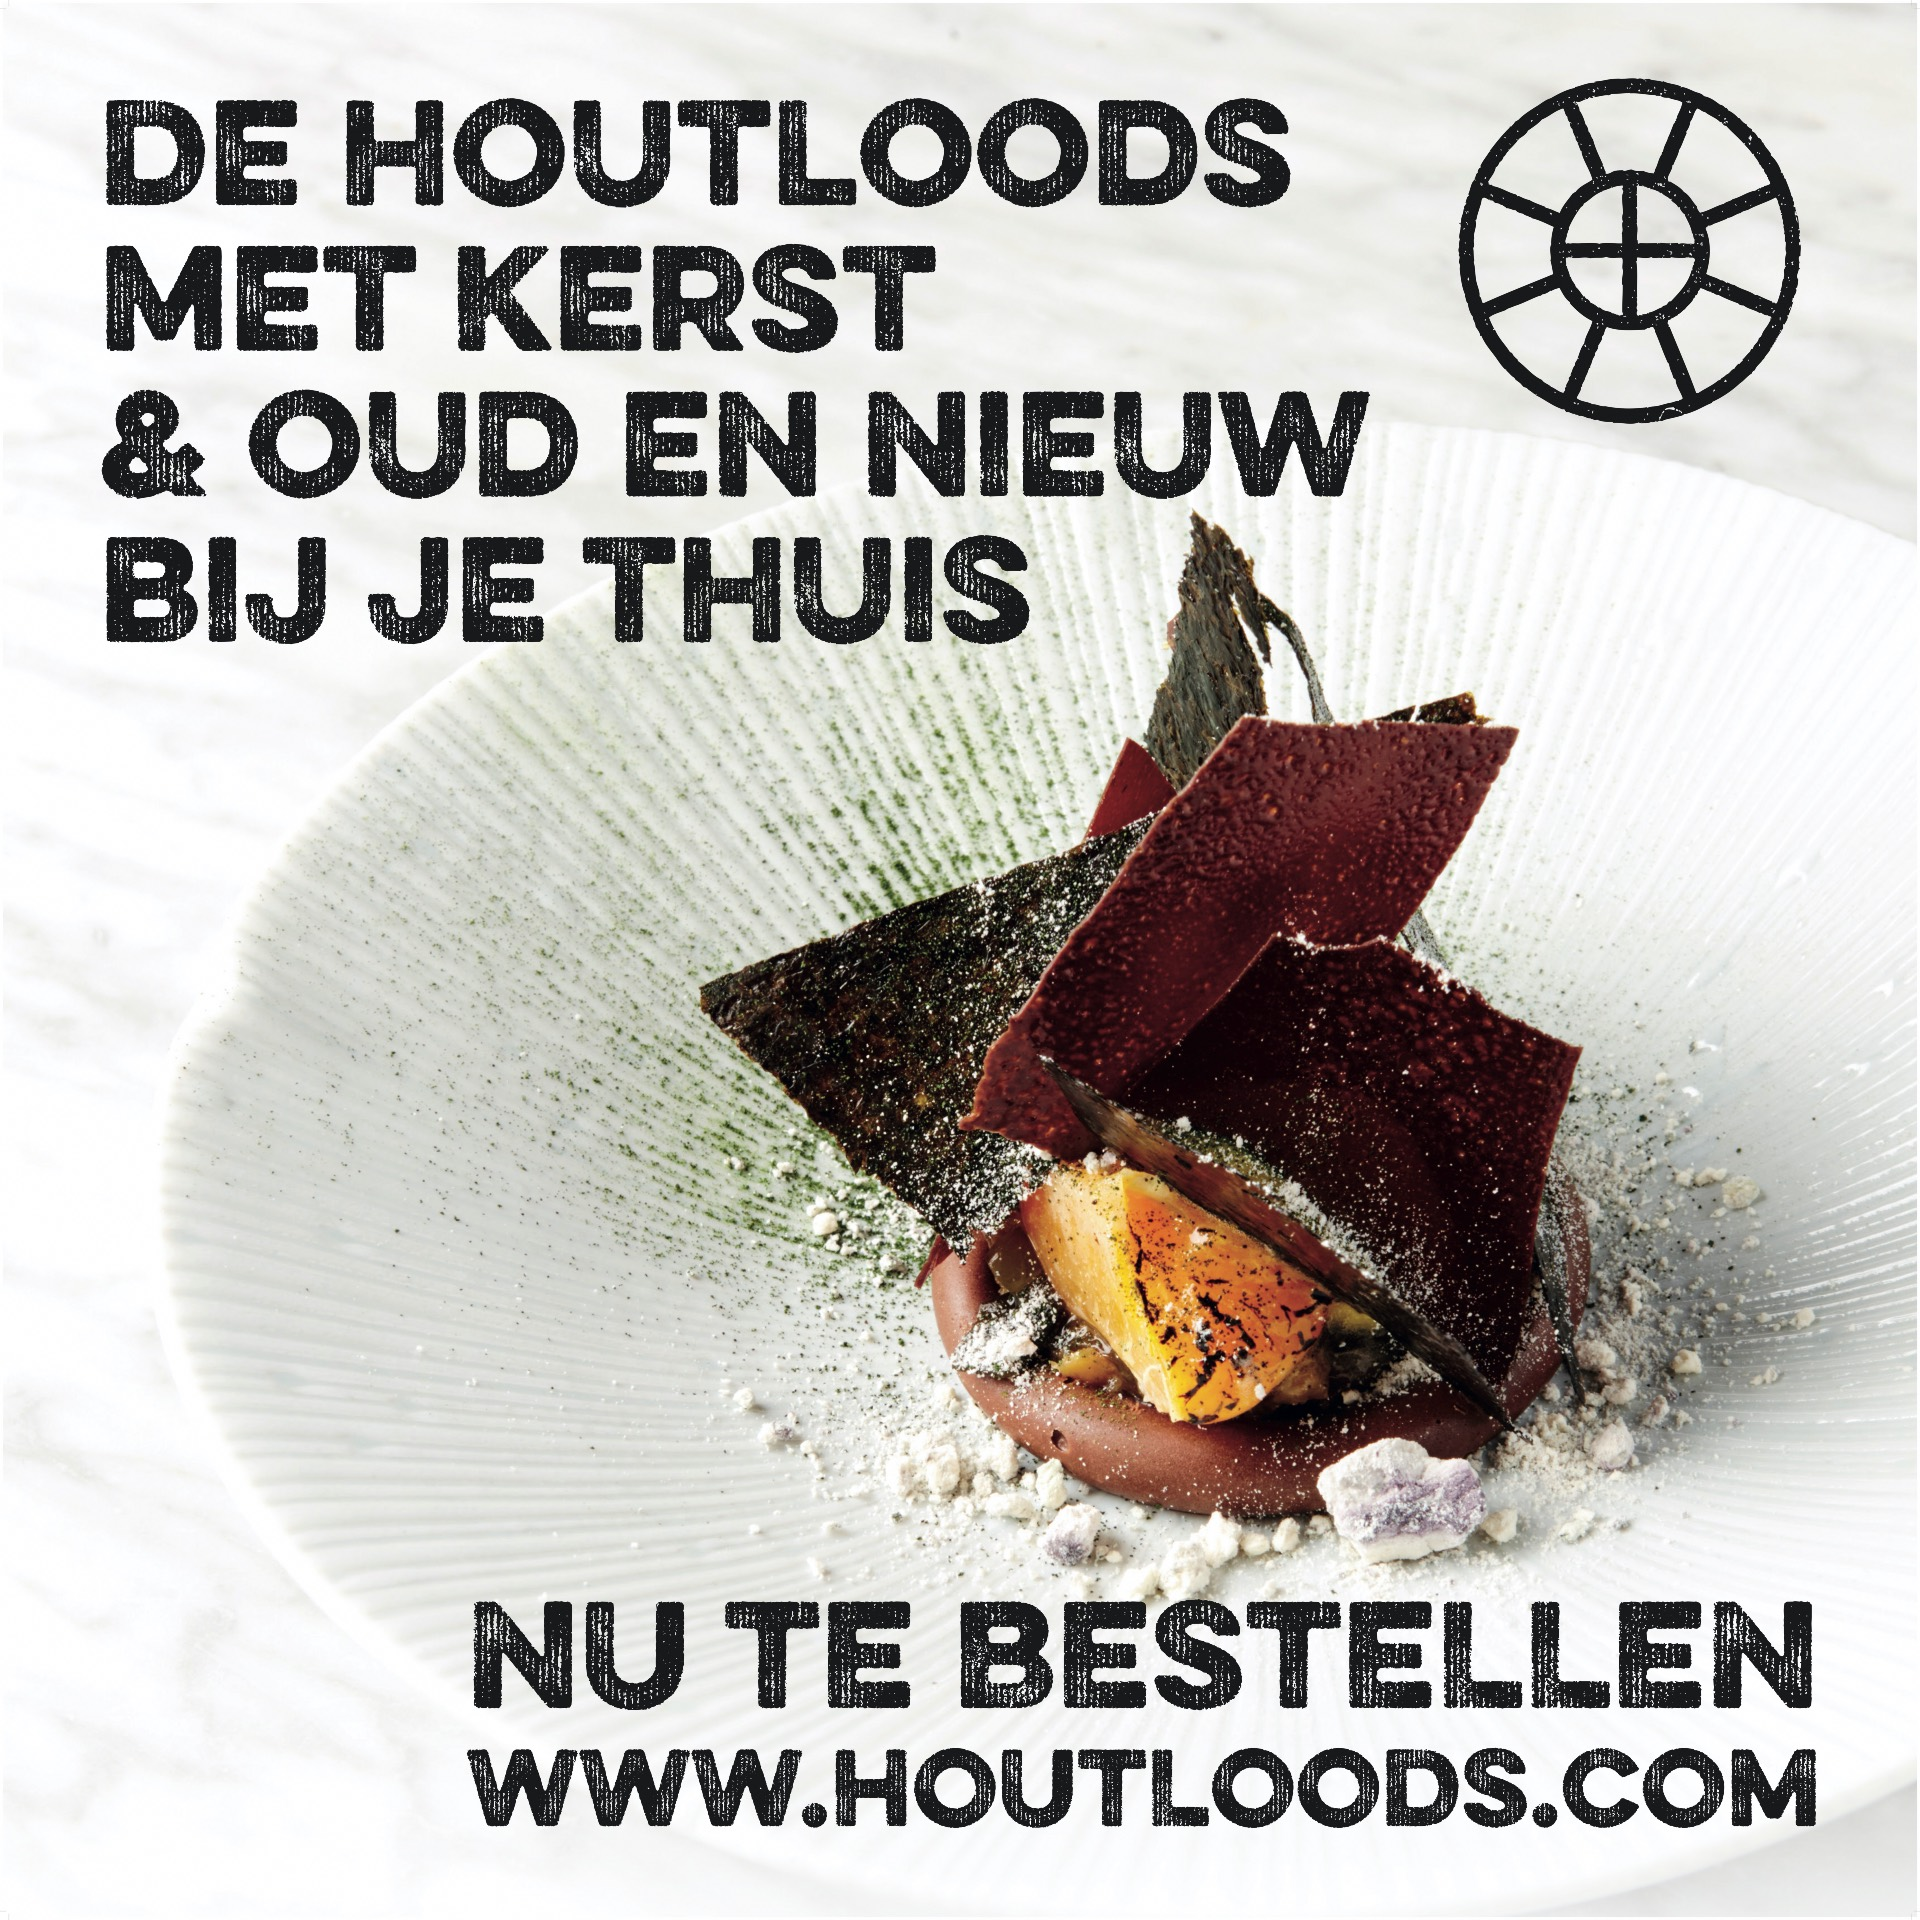 Banners_Houtloods_kerst2020 small